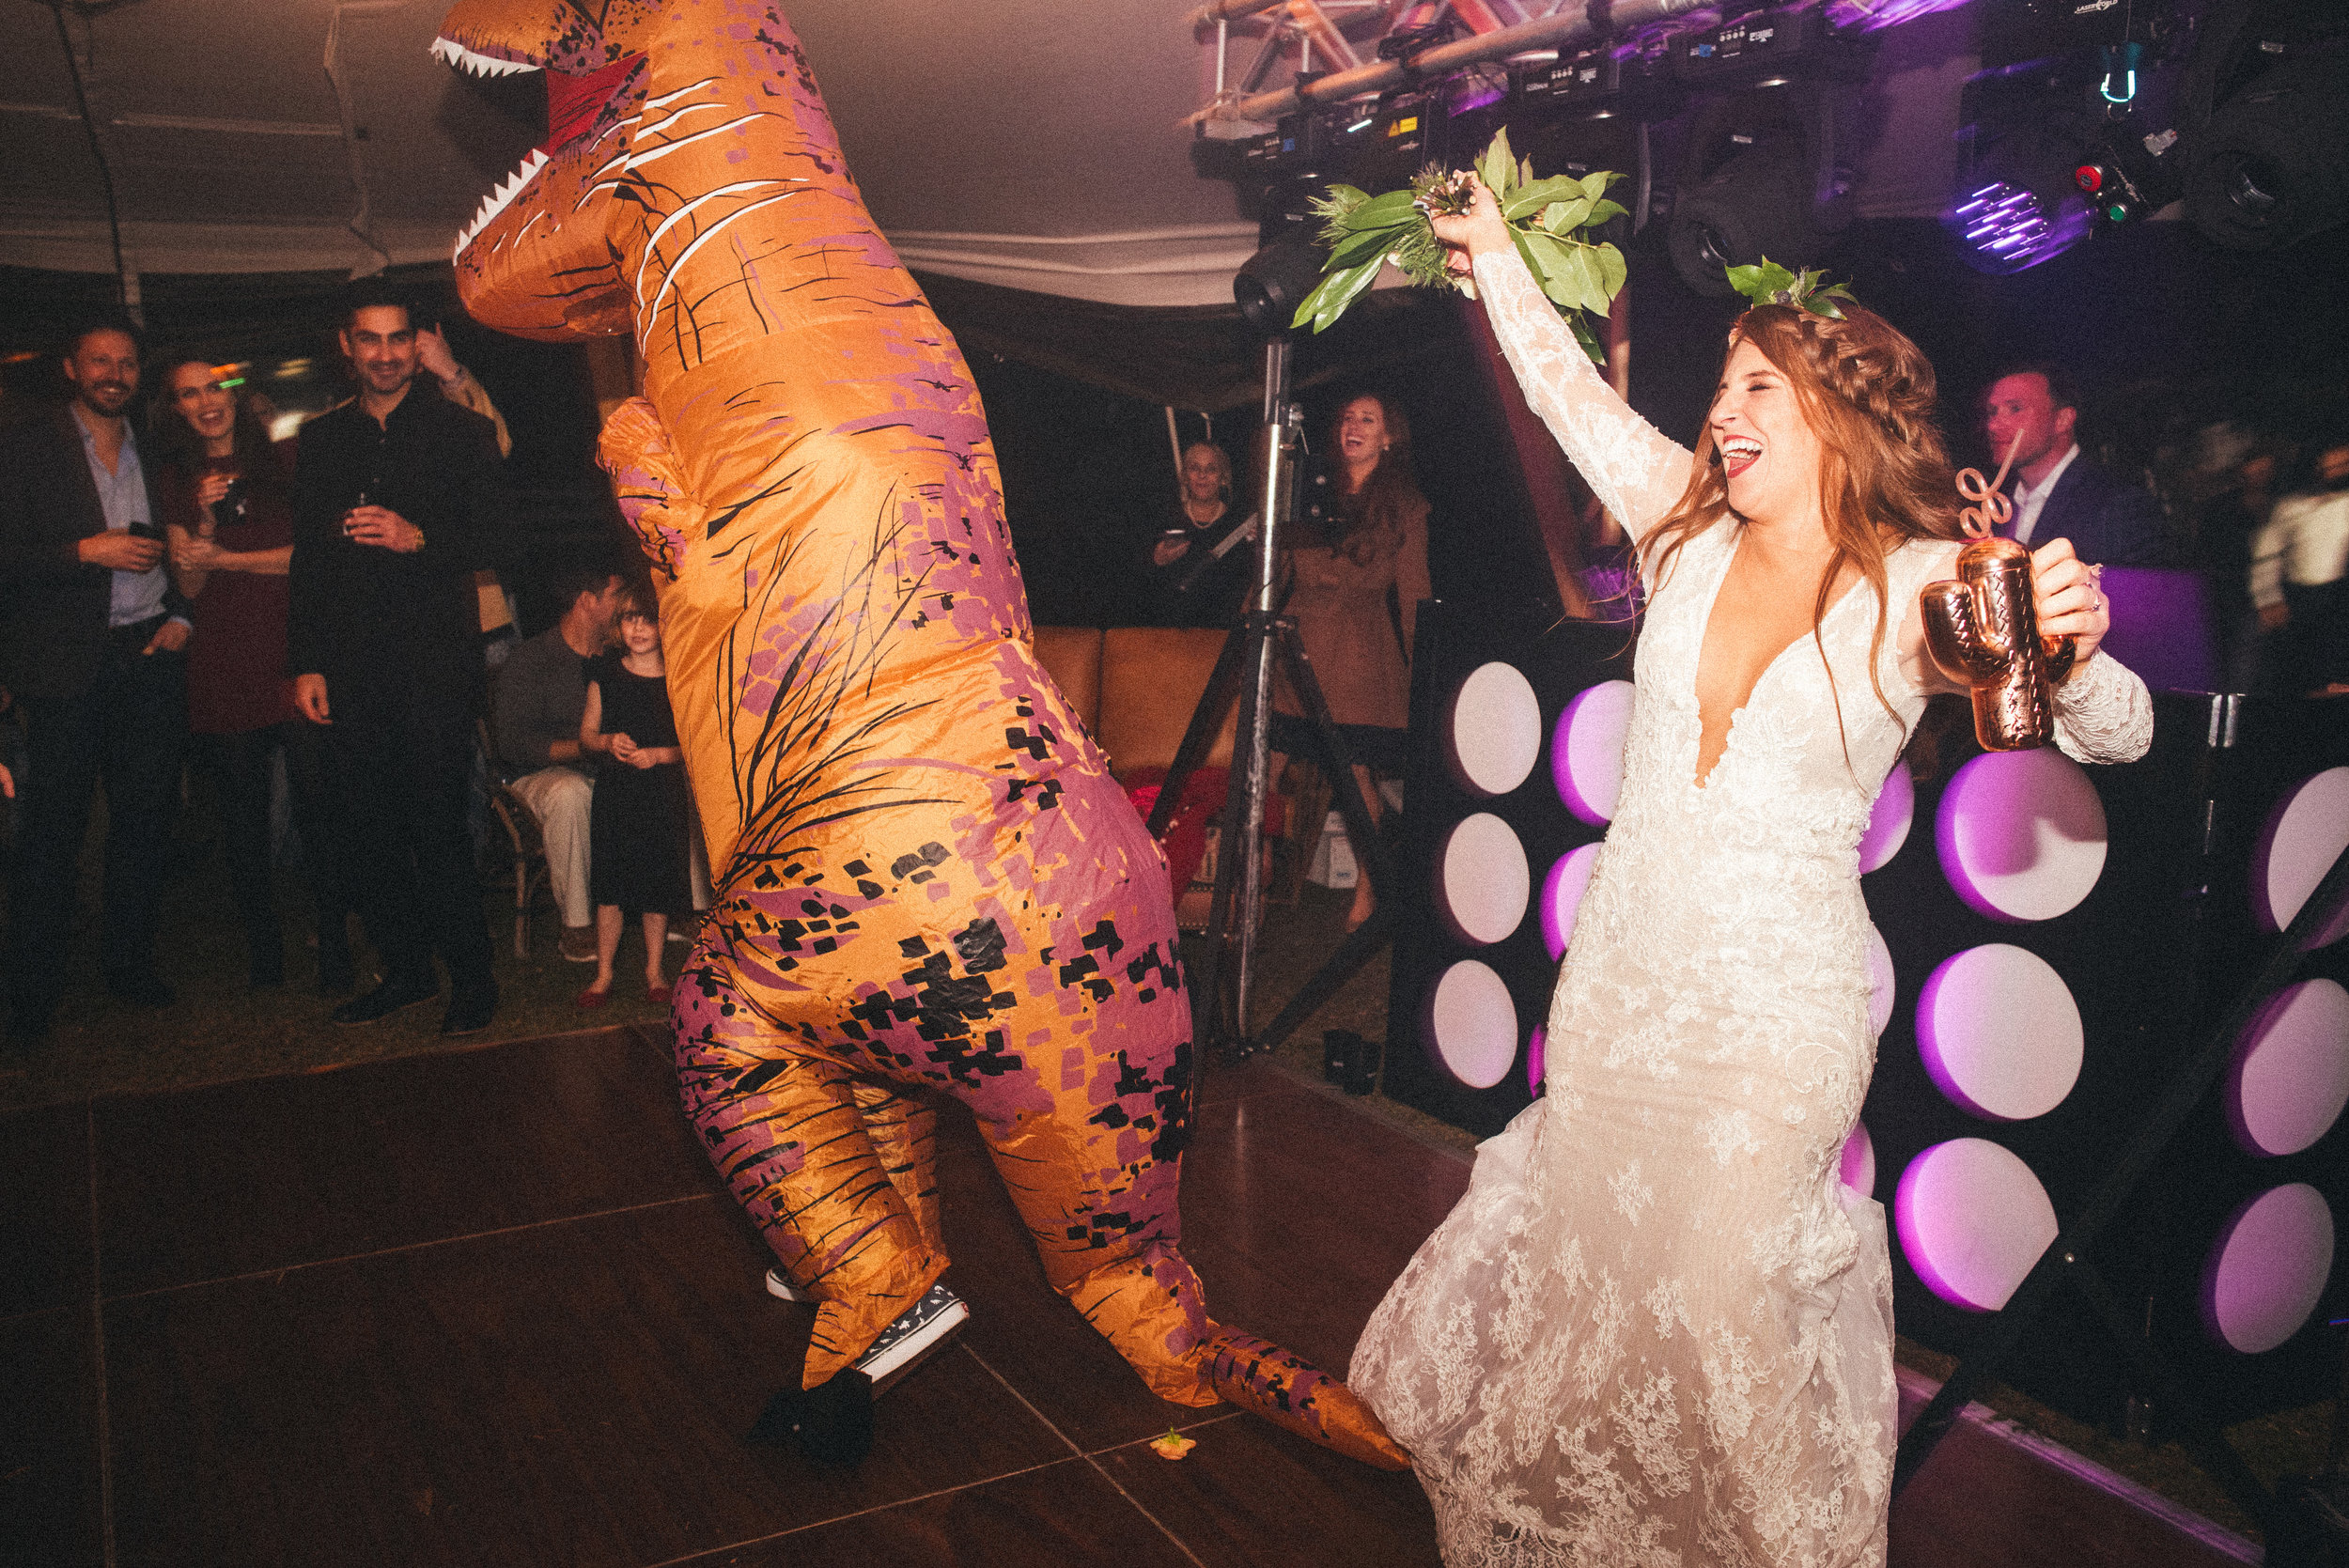 ivory-and-beau-dinosaur-wedding-savannah-wedding-planner-savannah-event-designer-savannah-florist-savannah-weddings-old-dairy-farm-bohemian-wedding-festival-wedding-boho-wedding-inspiration.jpg